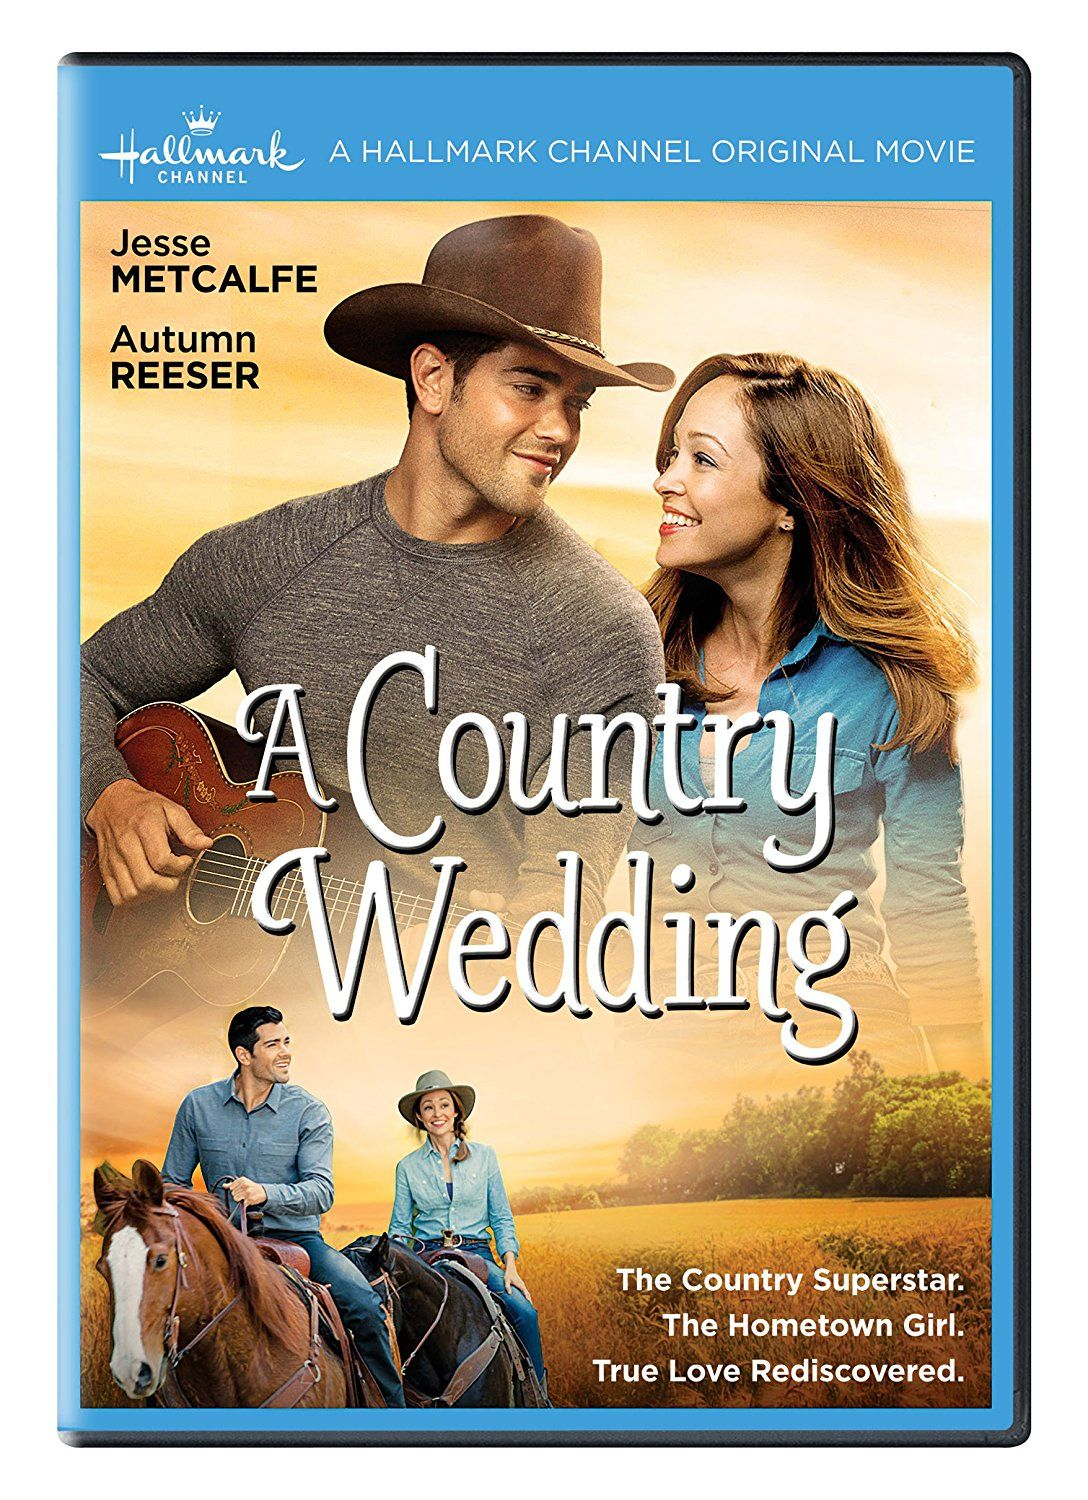 One of Hallmark's most popular movies, A Country Wedding